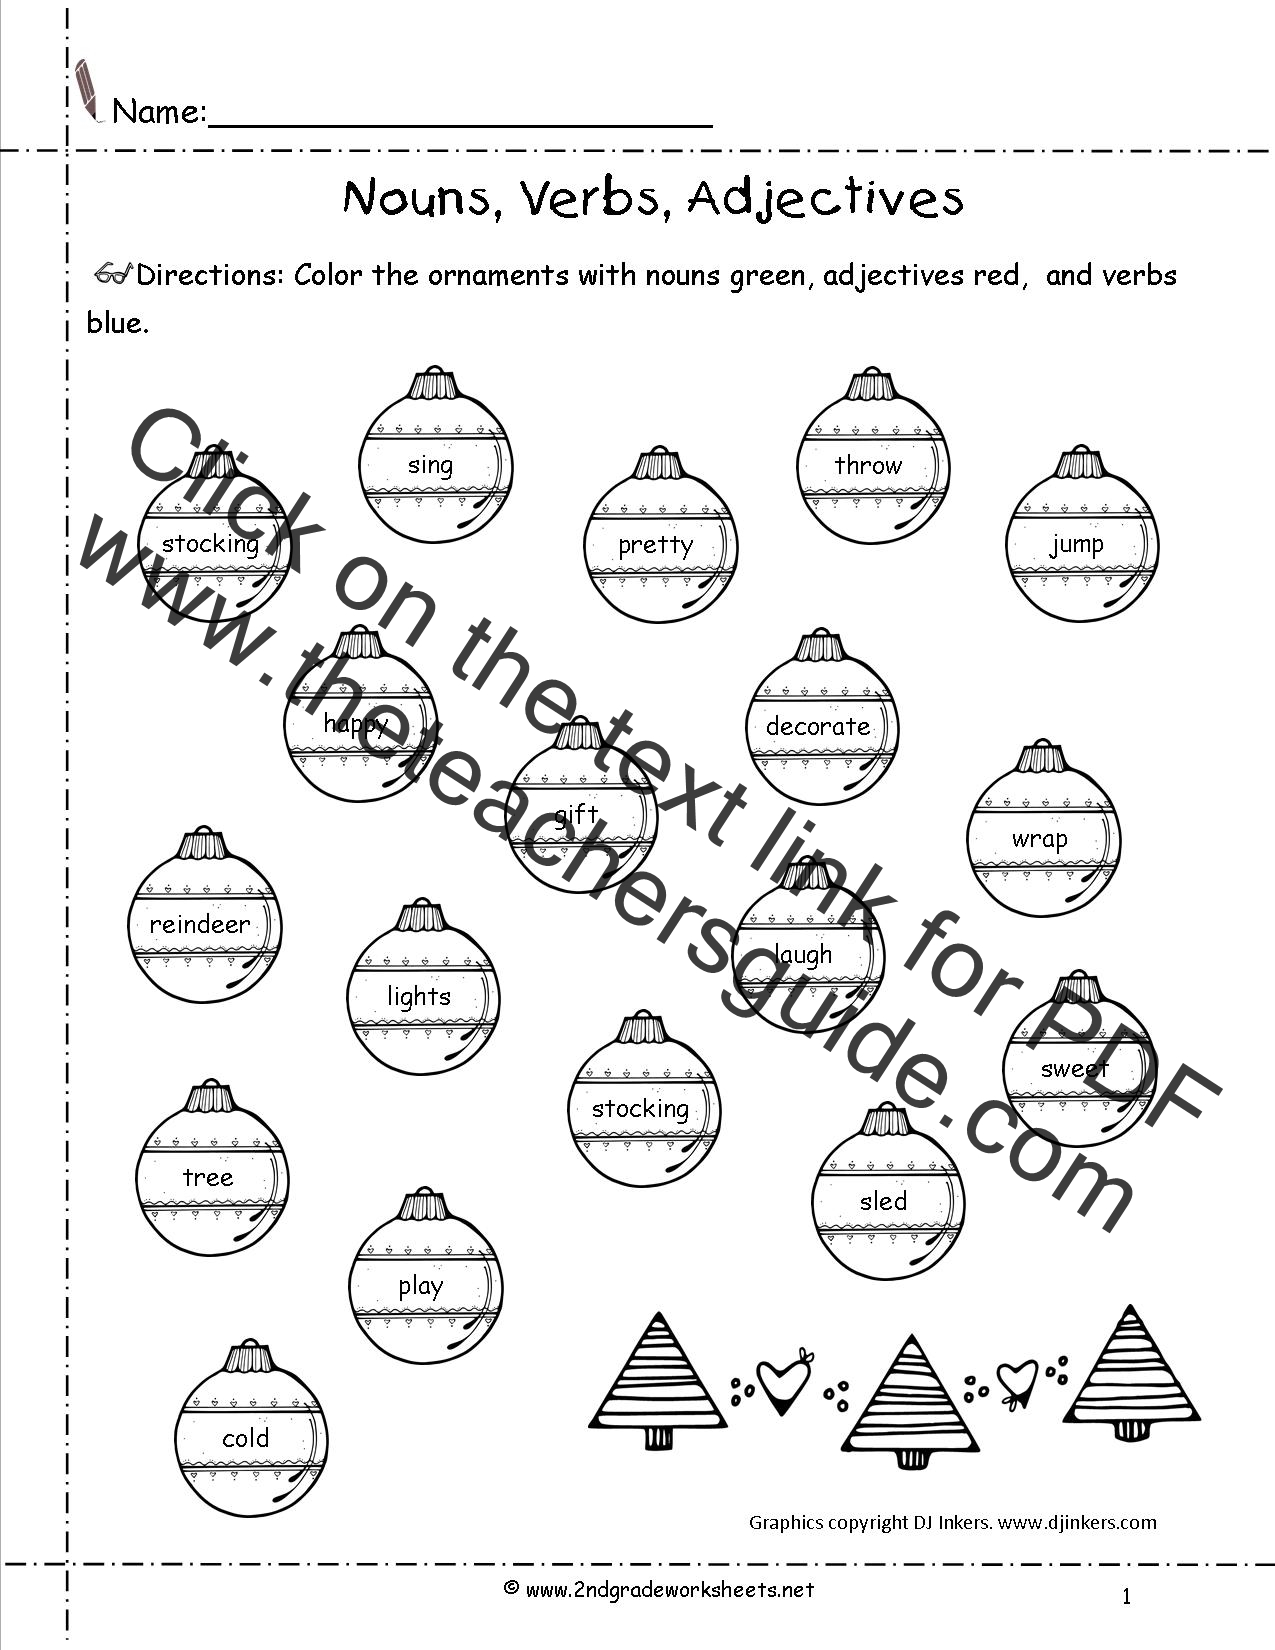 Worksheets Nouns And Verbs The Best and Most Comprehensive – Noun and Verb Worksheets